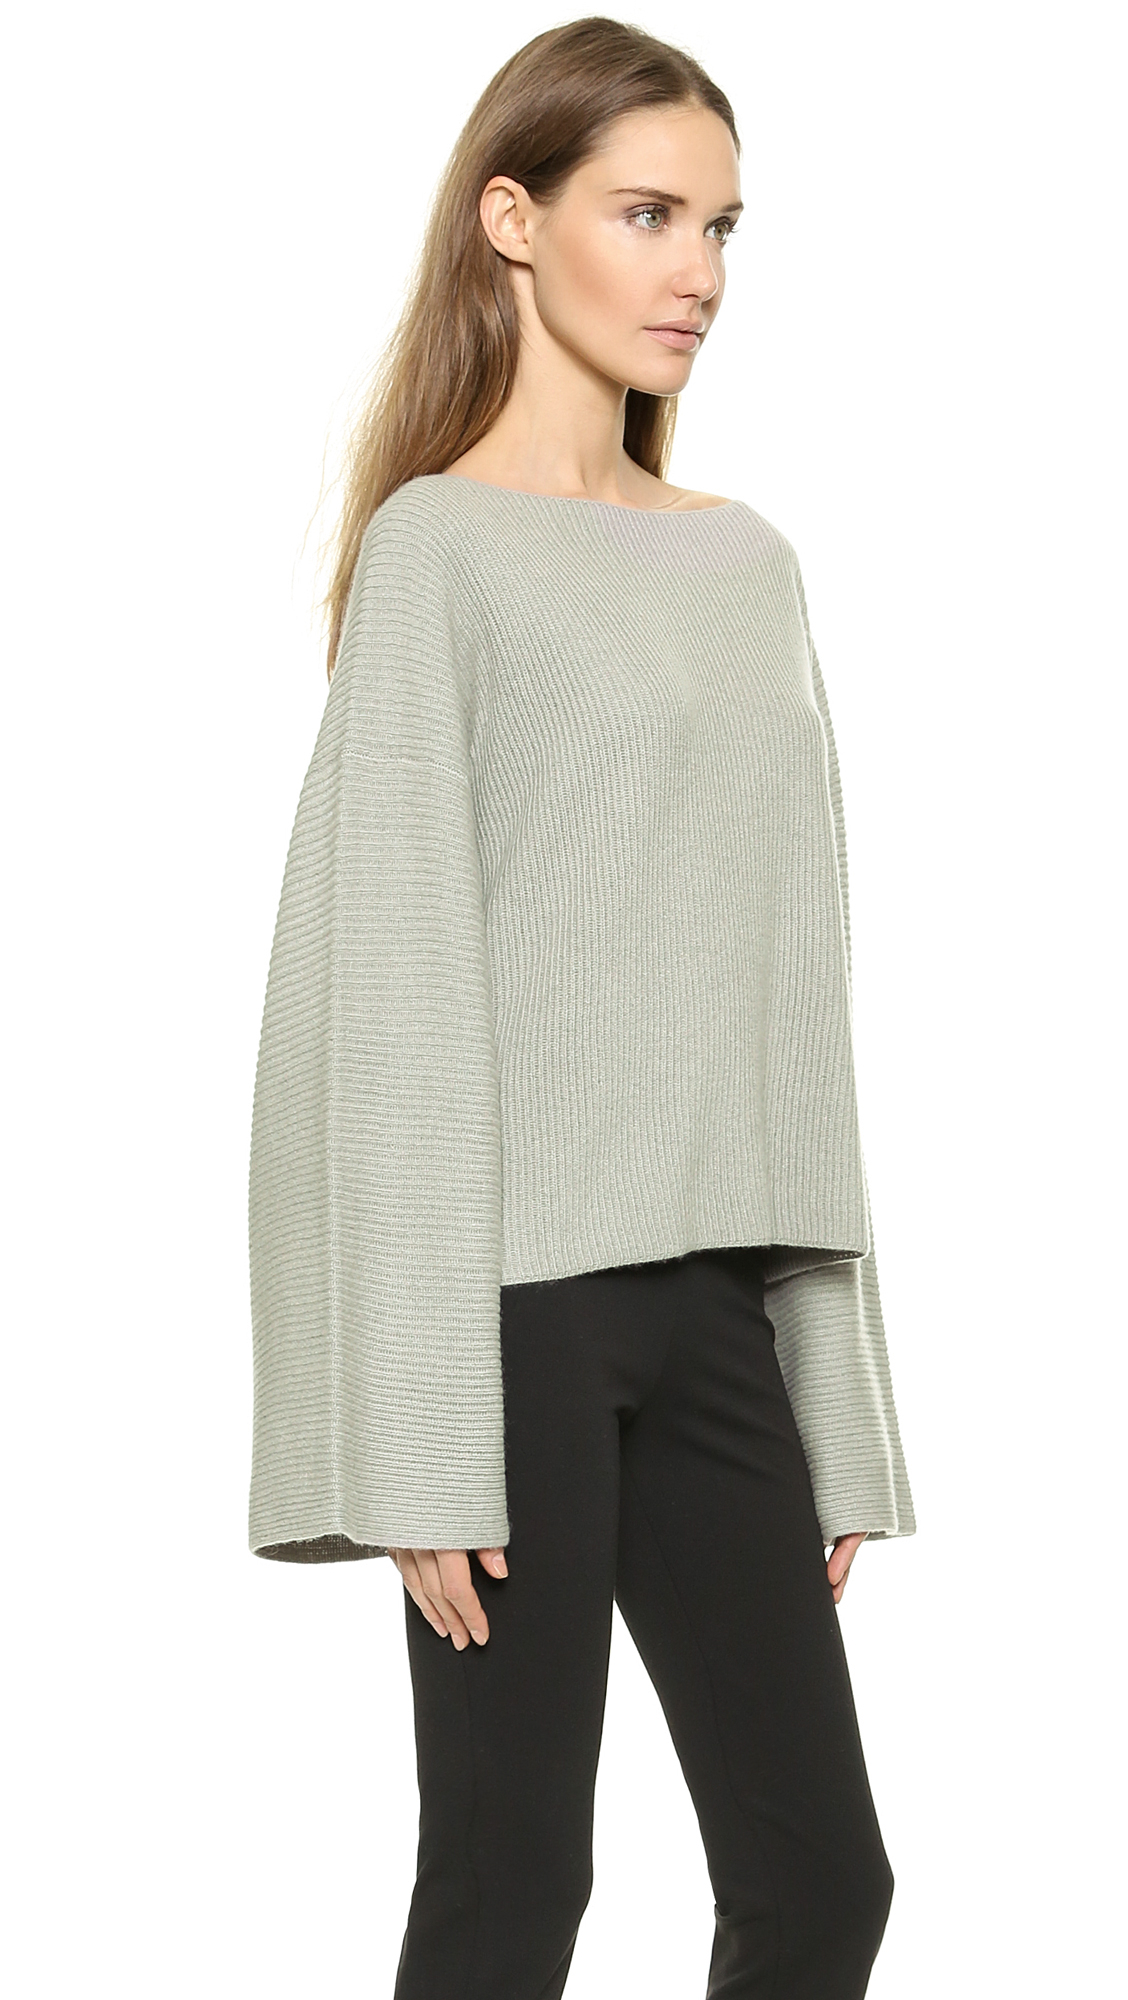 Donna karan new york easy cropped sweater zinc in gray for Donna karen new york